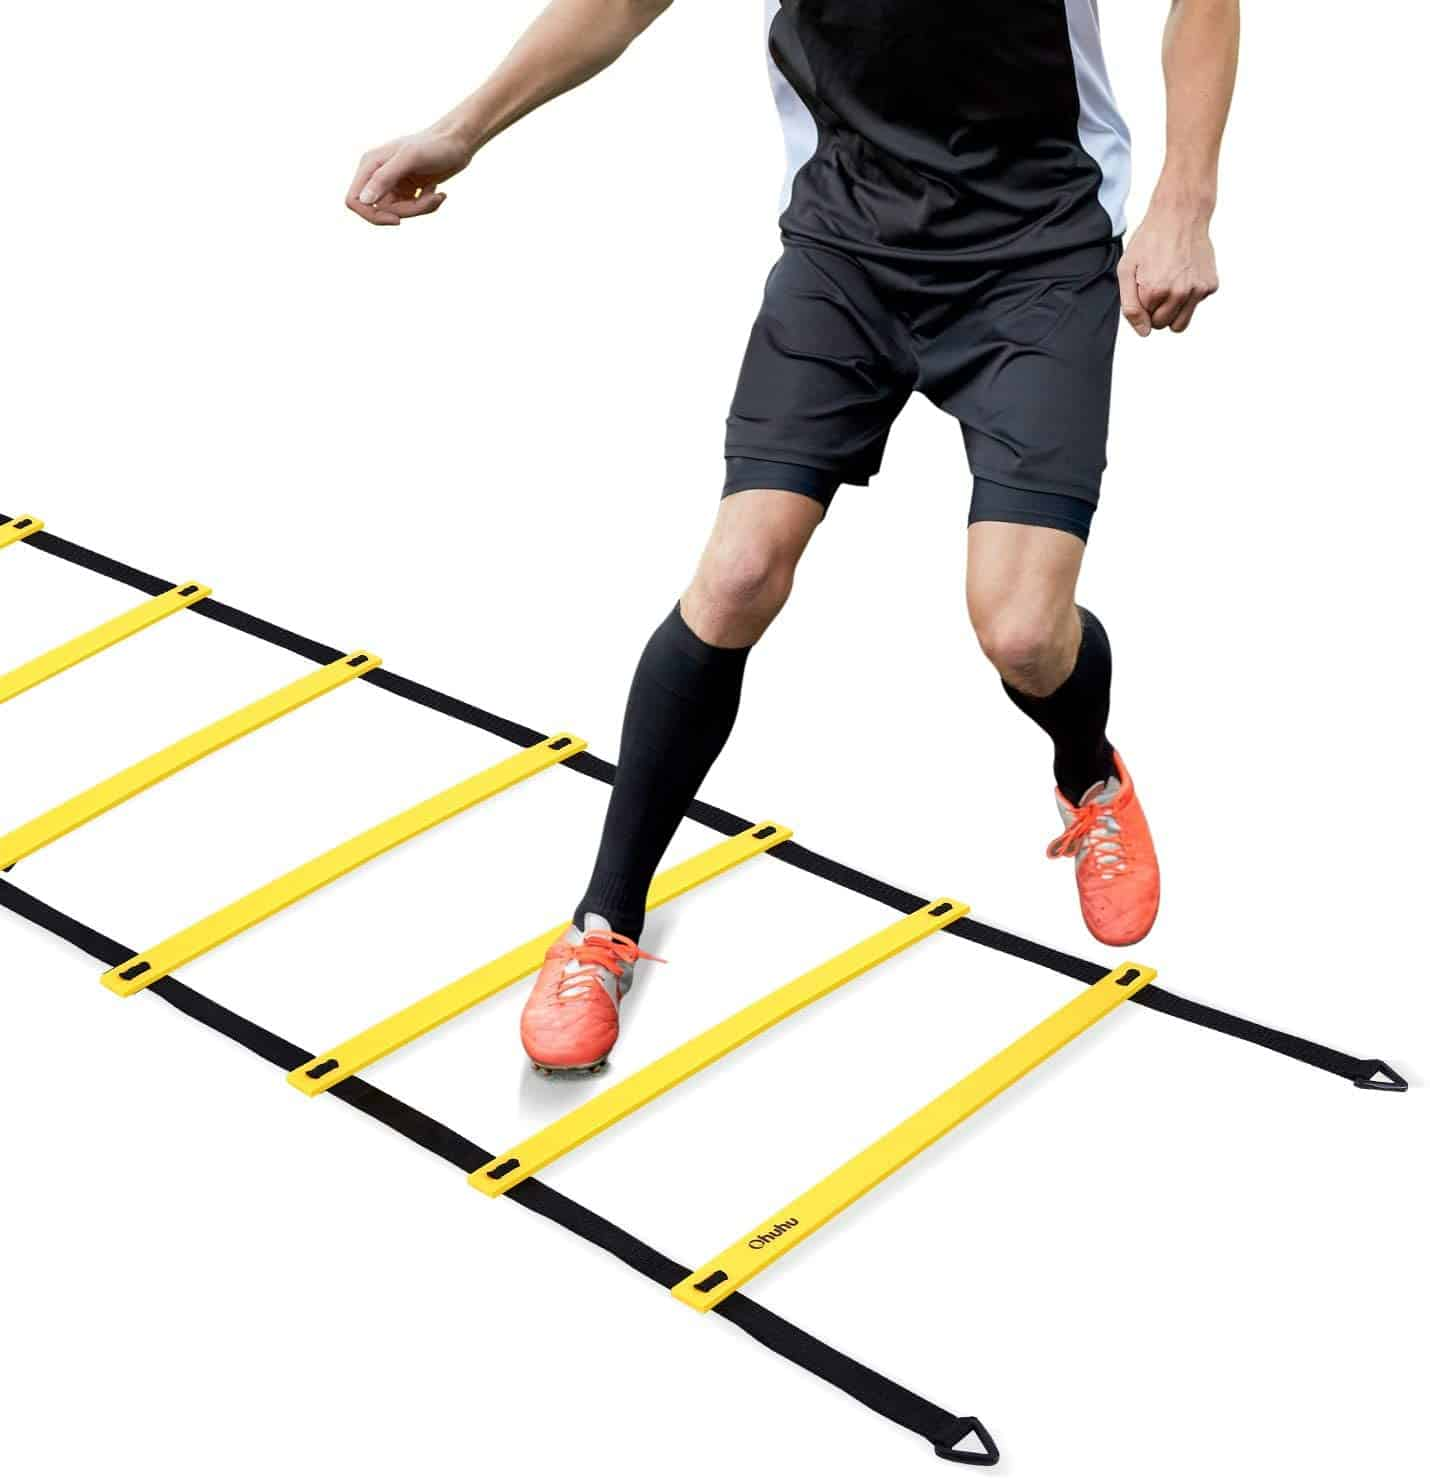 Person doing badminton agility circuit drill